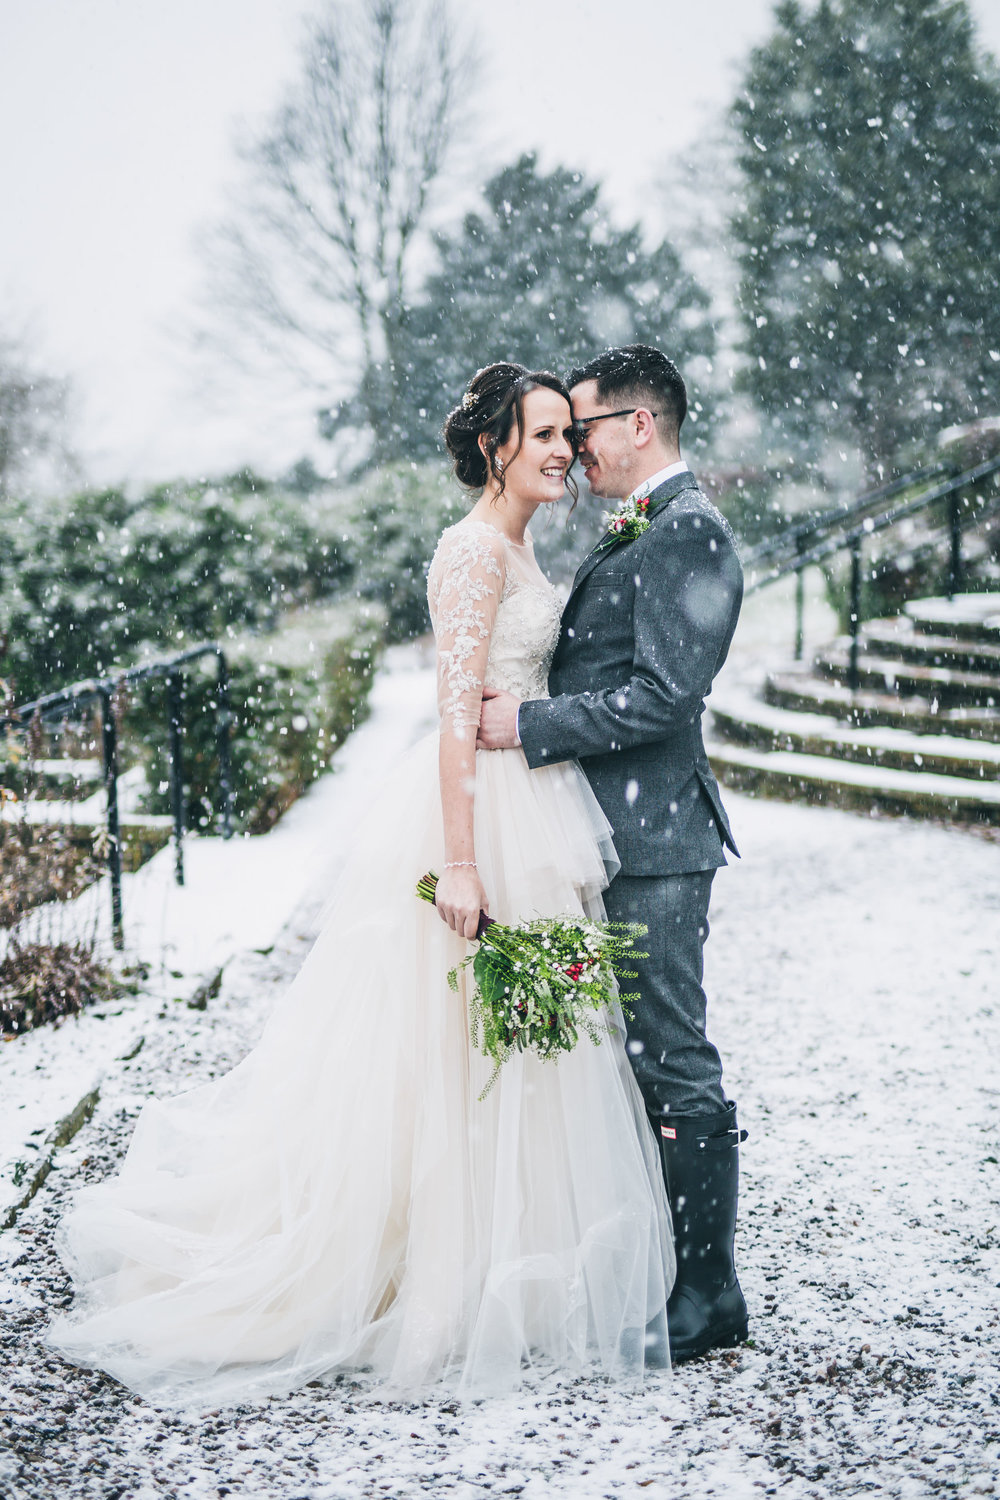 The bride and groom outside. Snowy wedding photos.